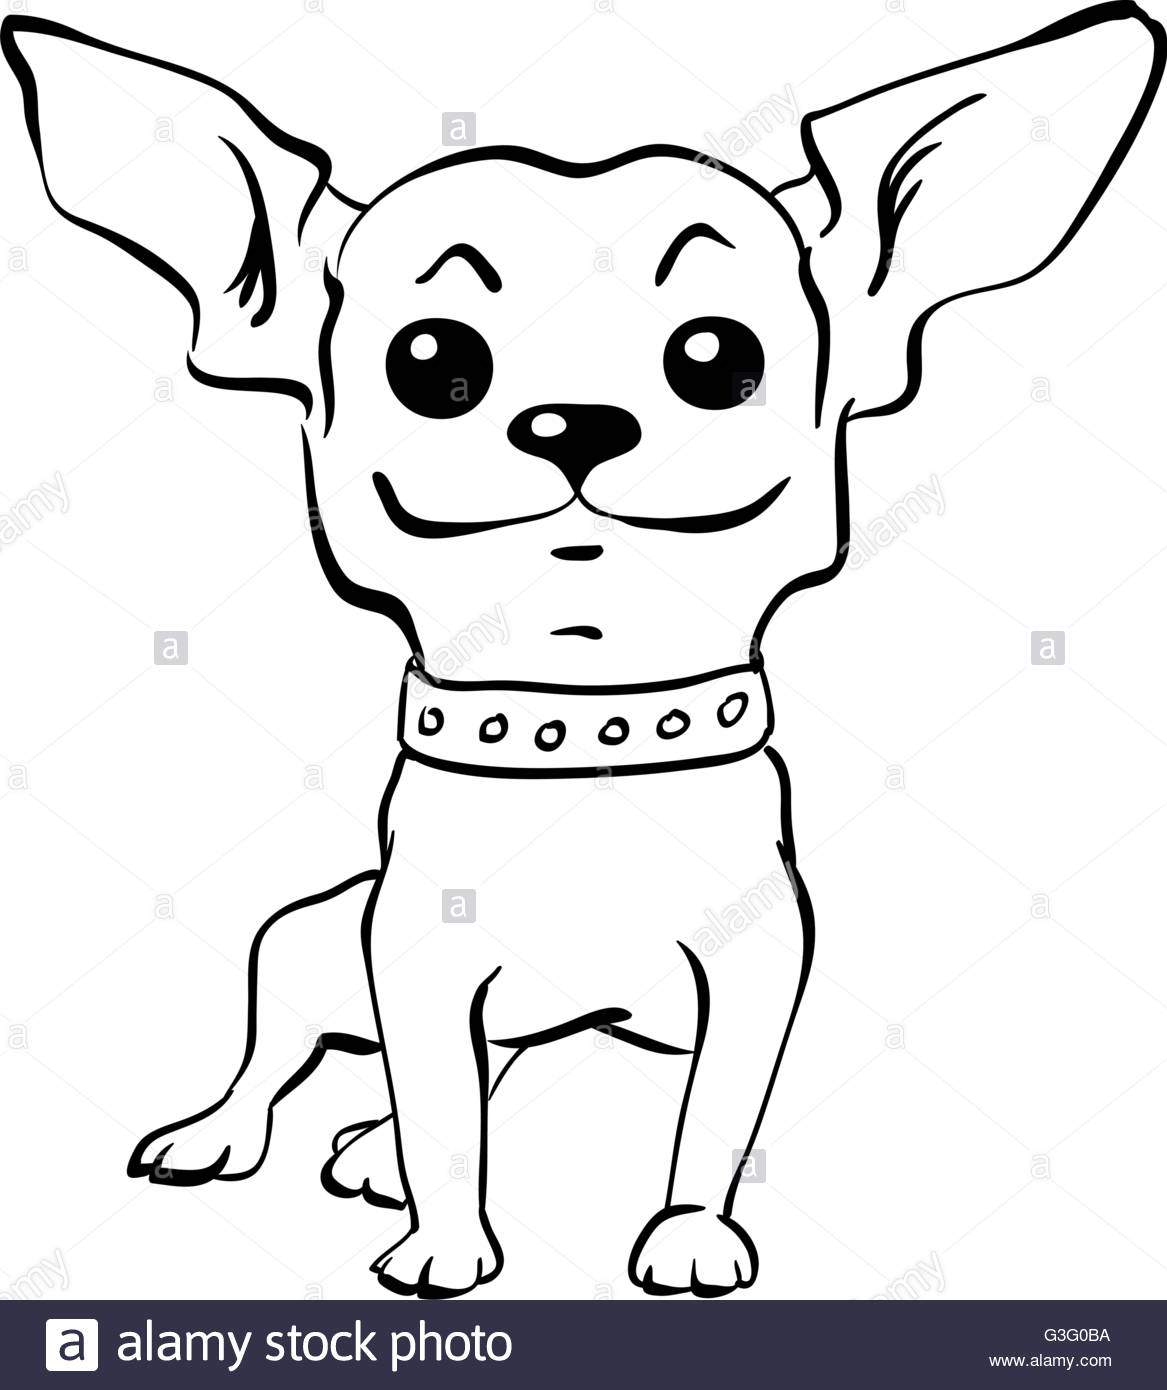 chihuahua dog drawing at getdrawings com free for personal use